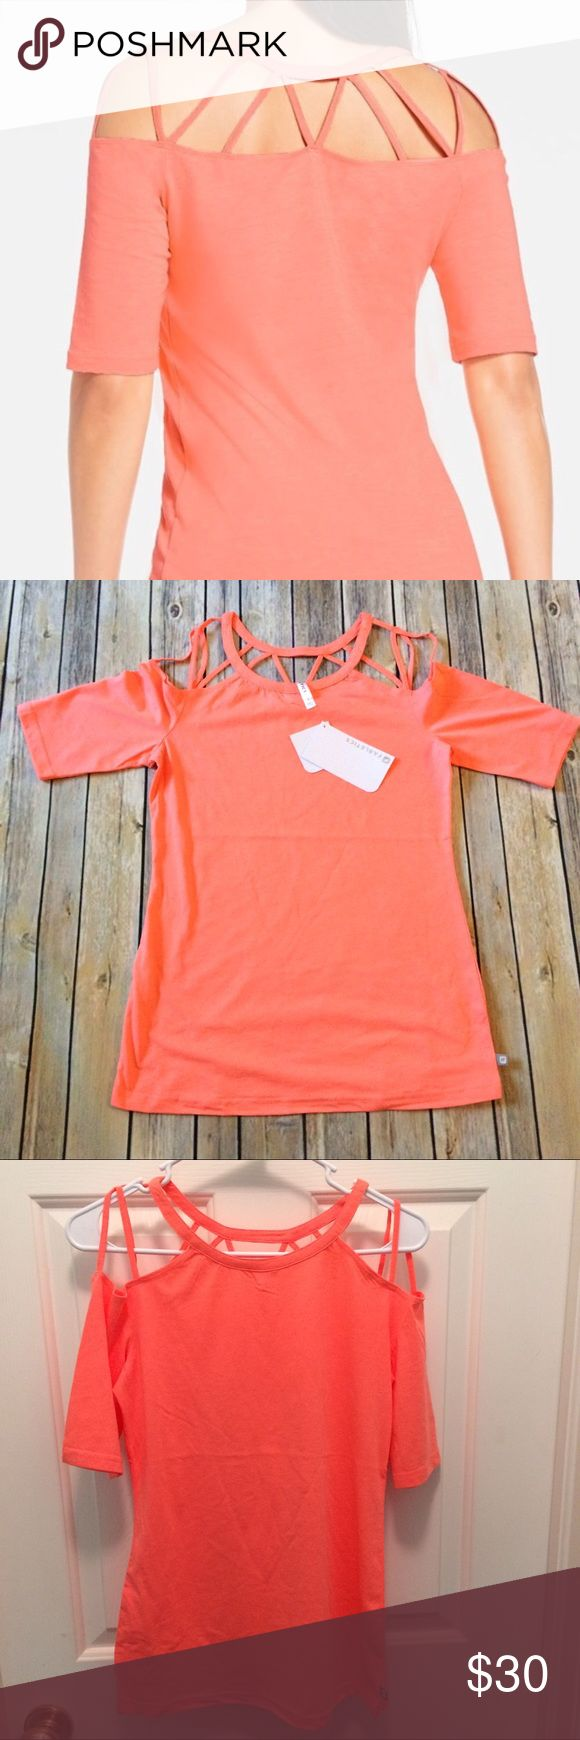 Fabletics top Brand New! Bright coral orange  strappy top. Fabletics Tops